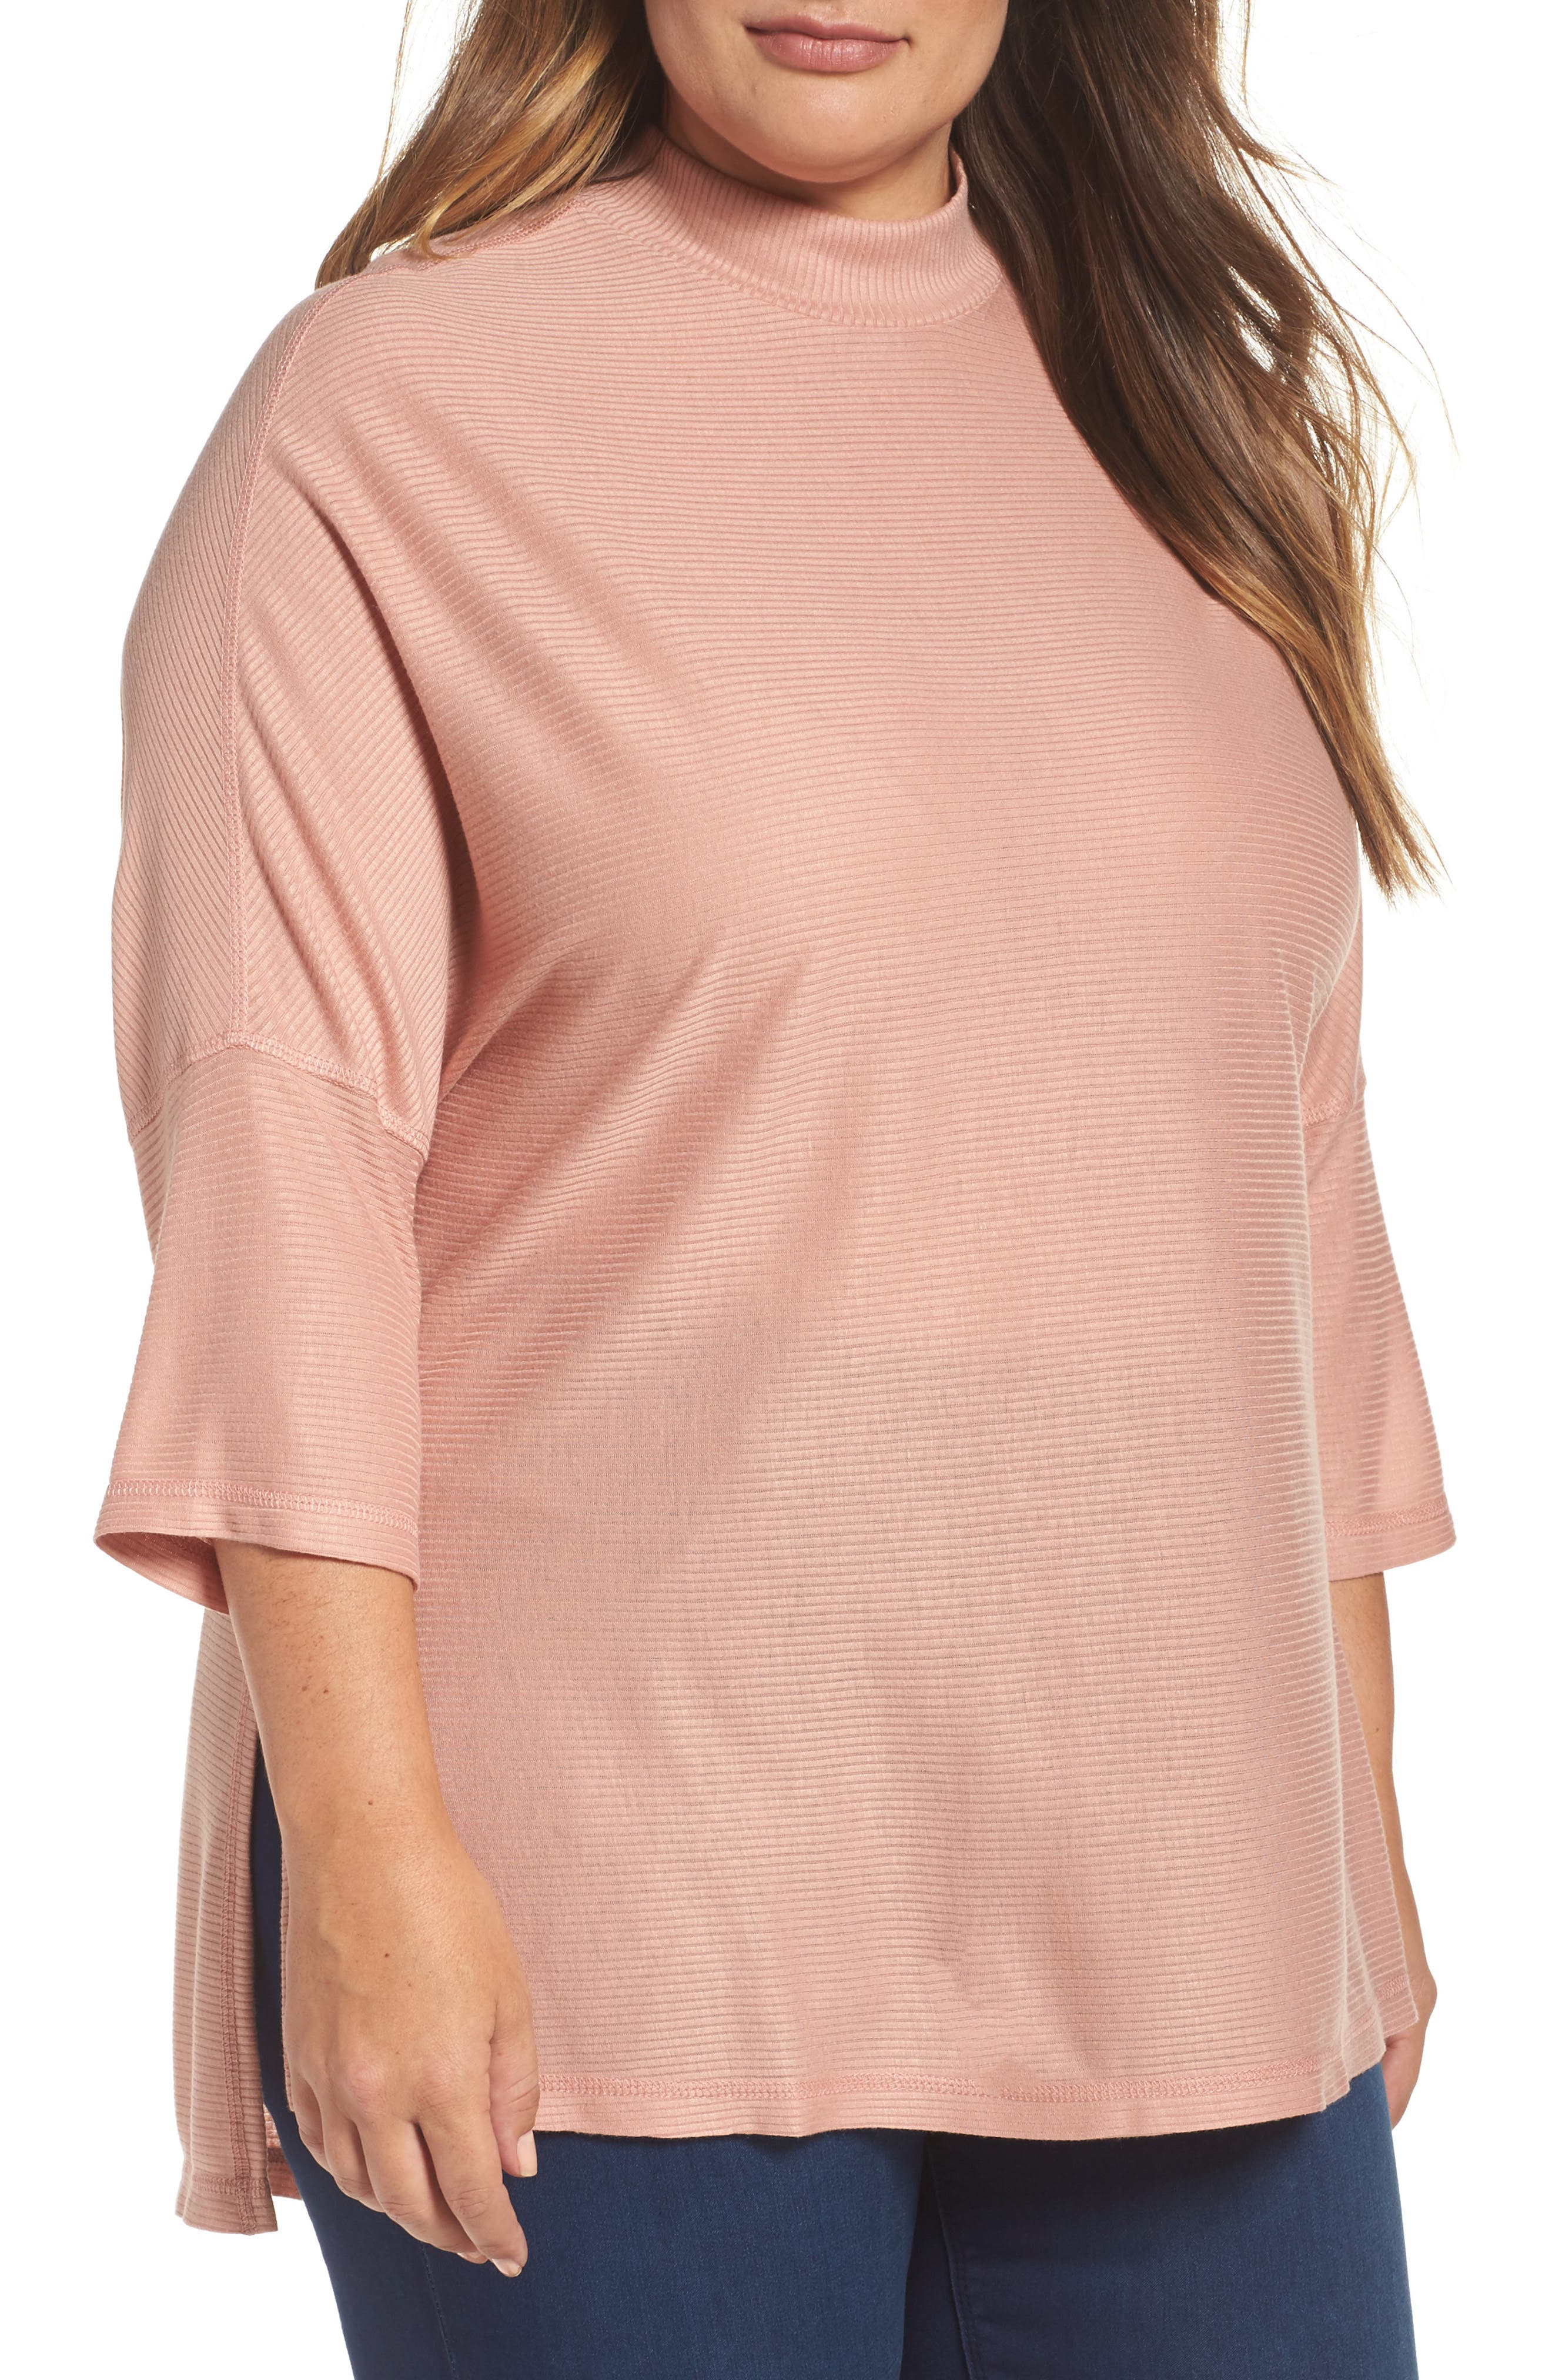 Alternate Image 1 Selected - Melissa McCarthy Seven7 Mock Neck Rib Knit Top (Plus Size)